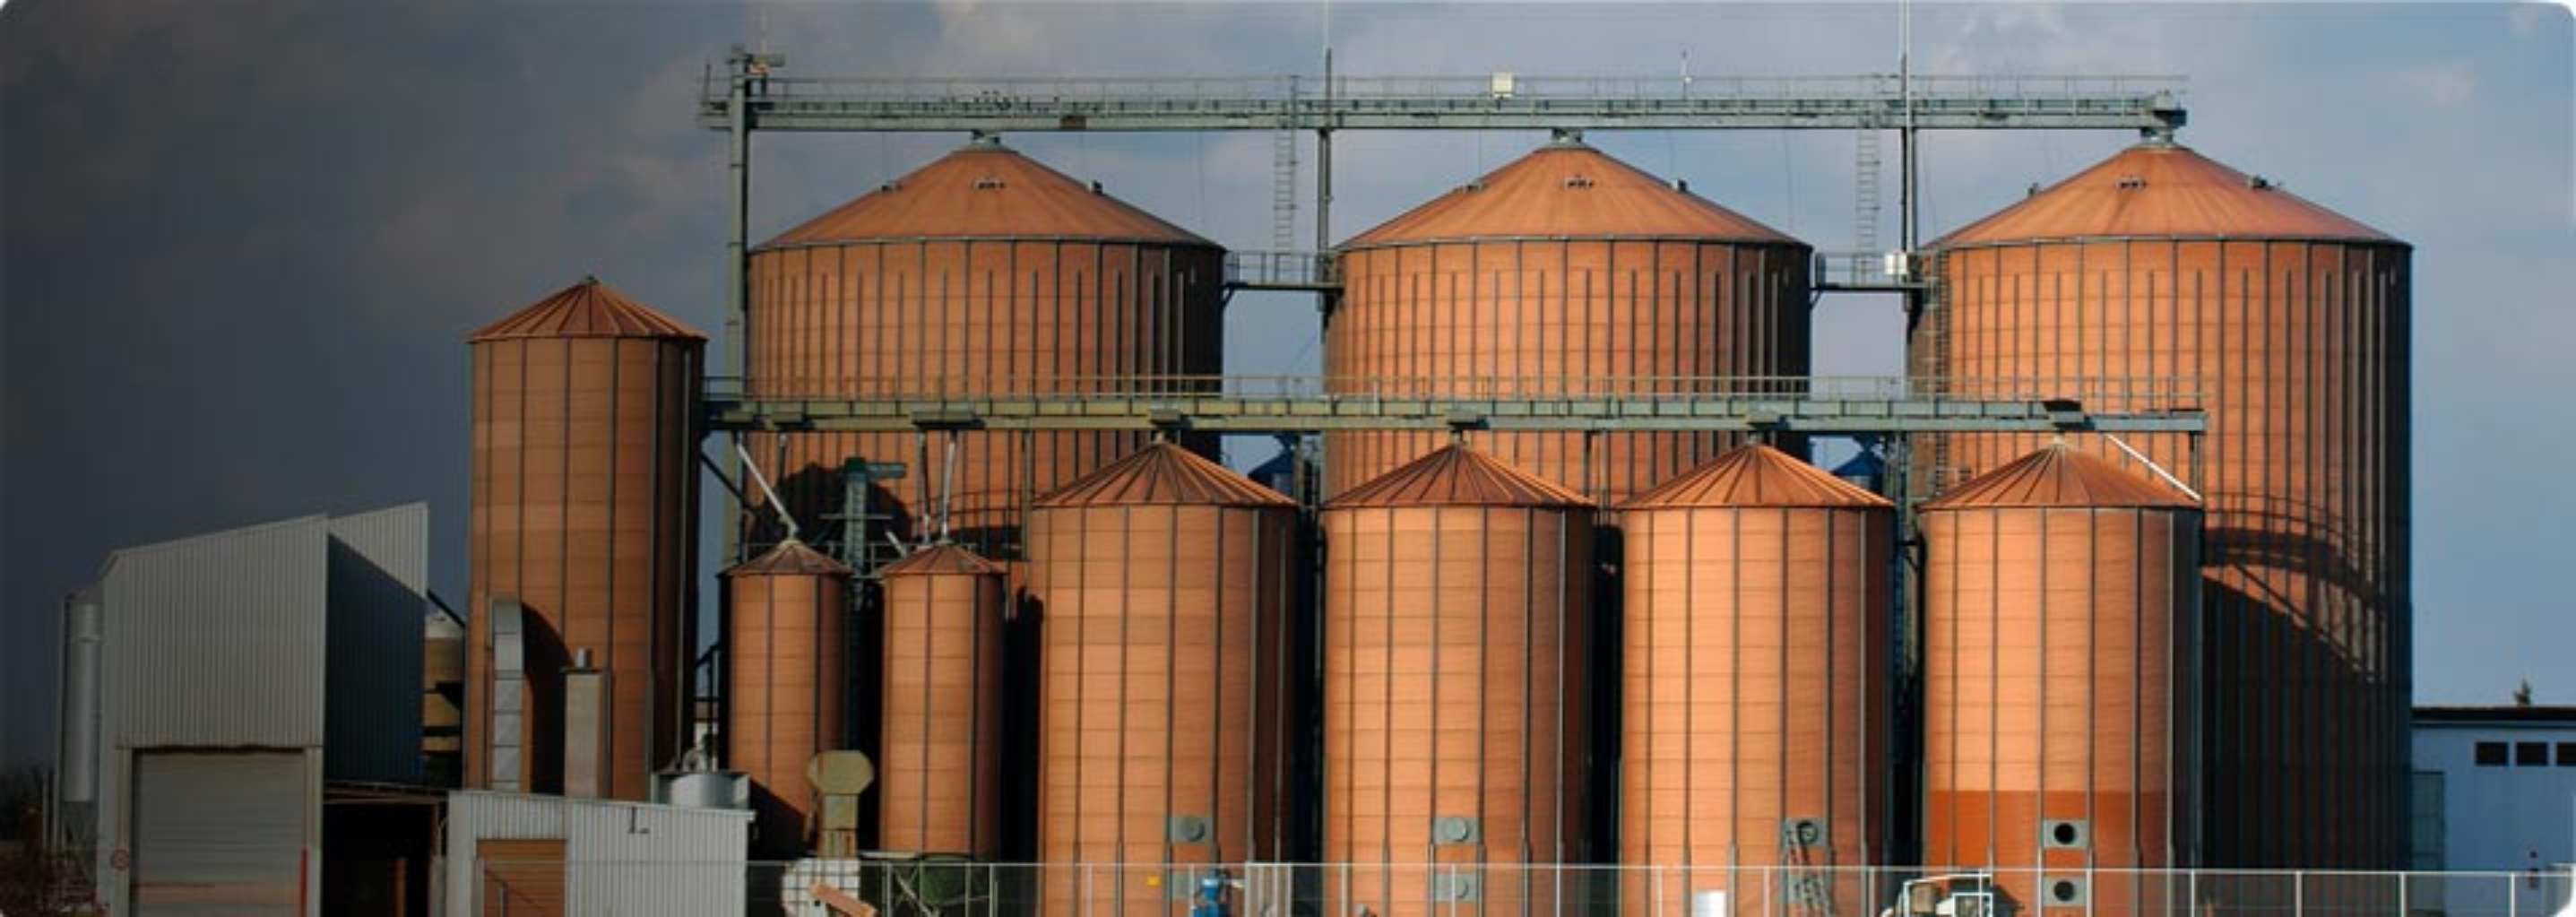 Breaking the Silos